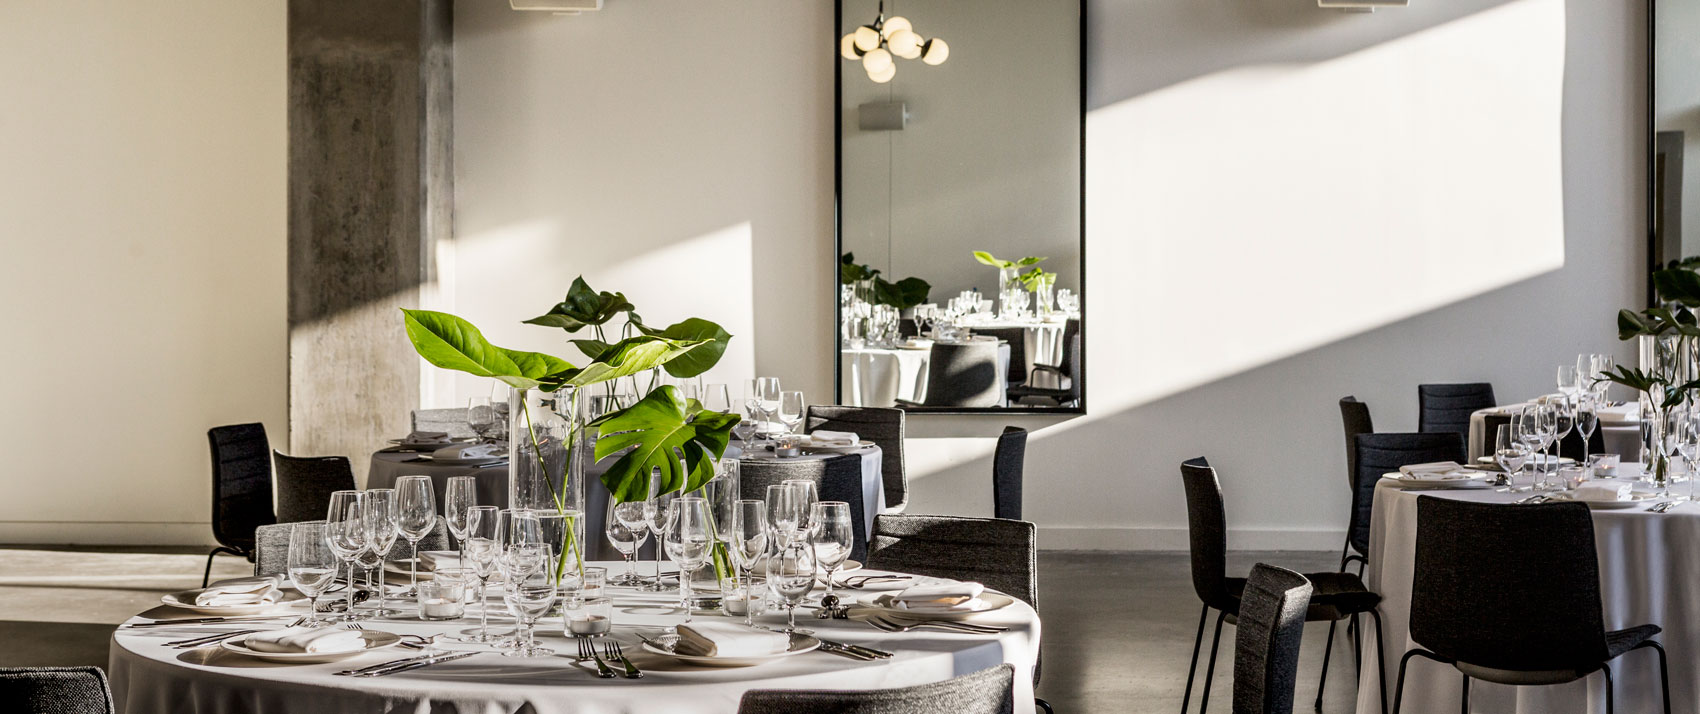 dinner-reception-rounds-natural-light-with-mirror-everly-hollywood